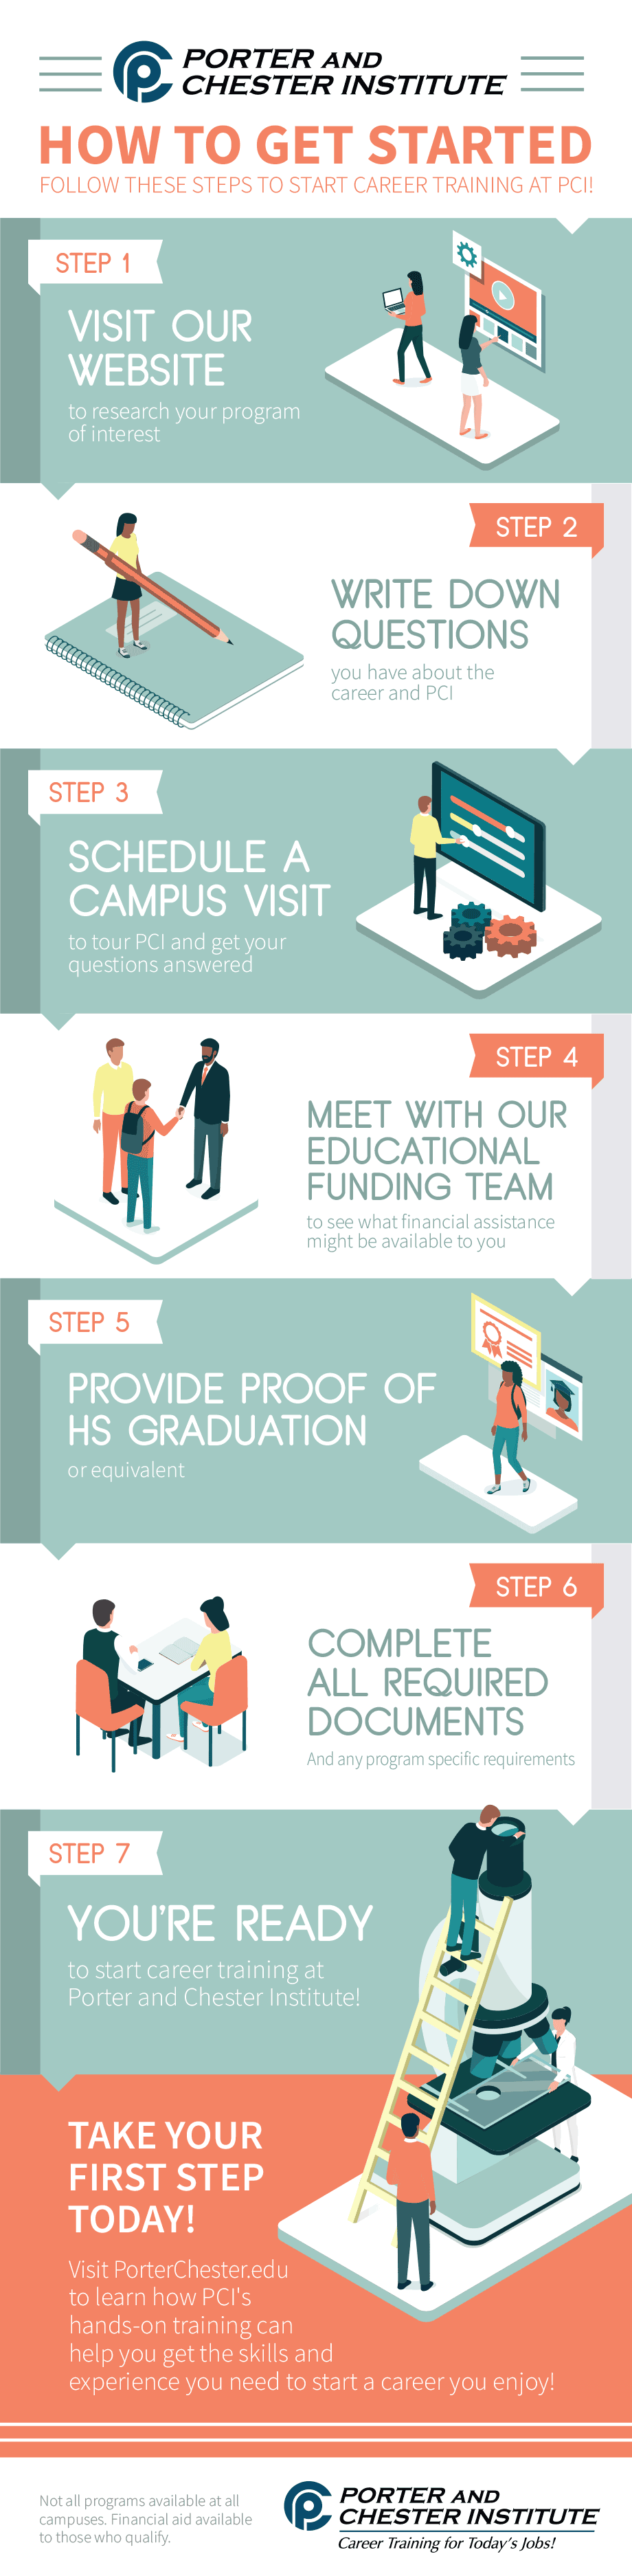 Infographic: How to get started at PCI